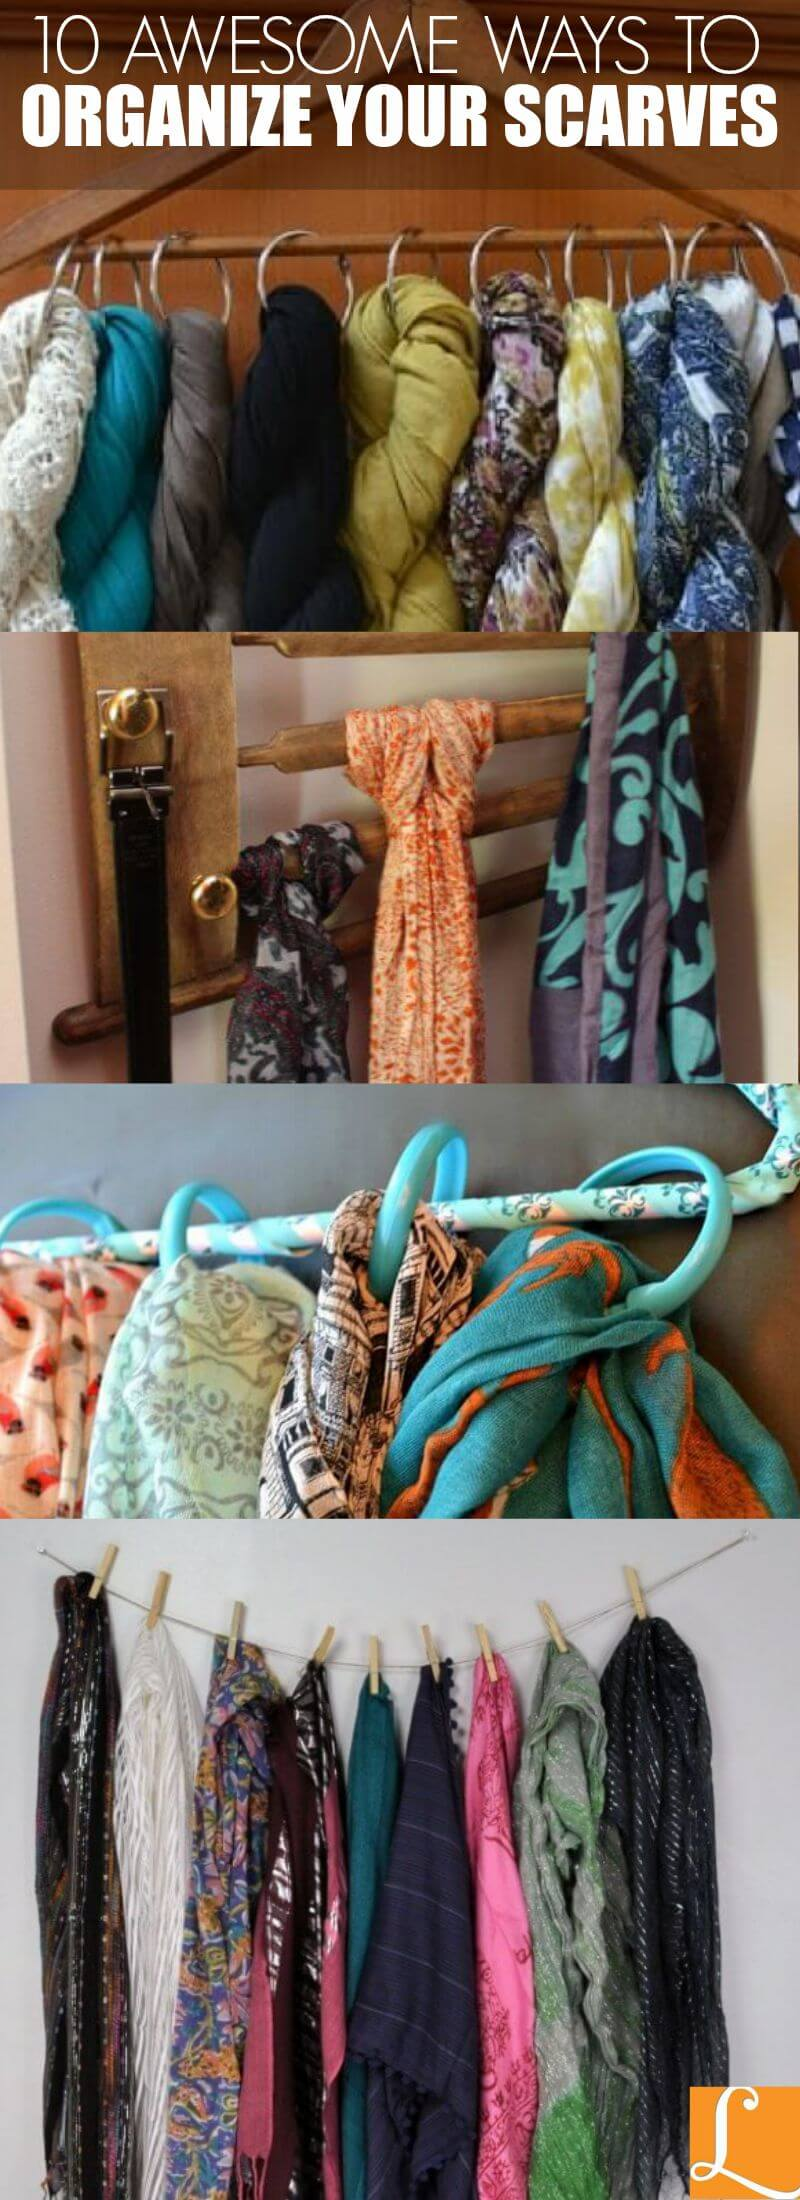 10 Awesome Ways to Organize Your Scarves